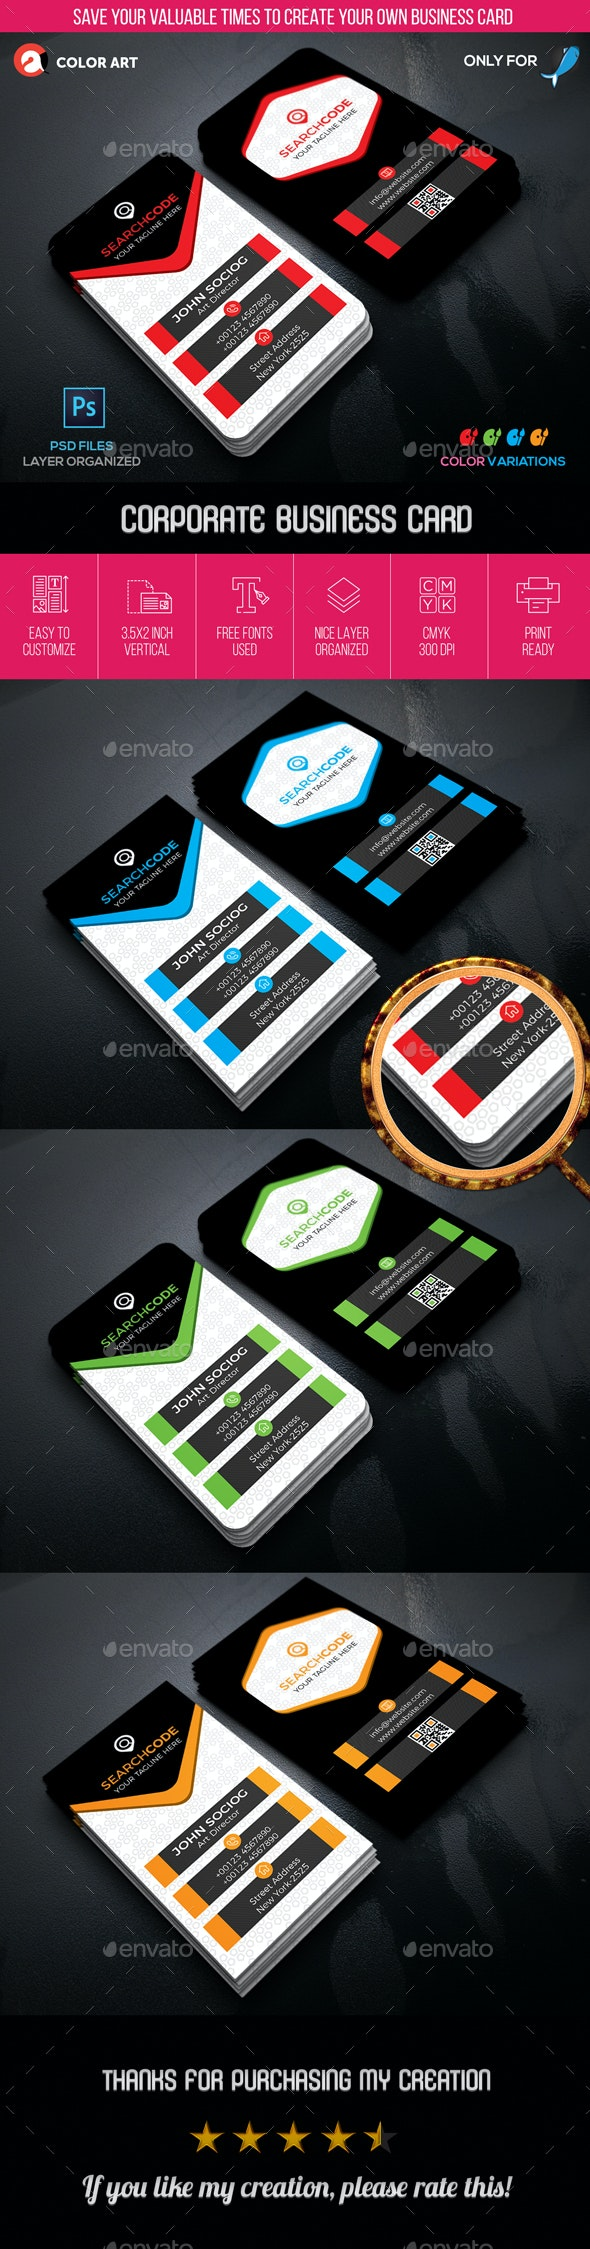 Corporate Business Card V.2 - Business Cards Print Templates